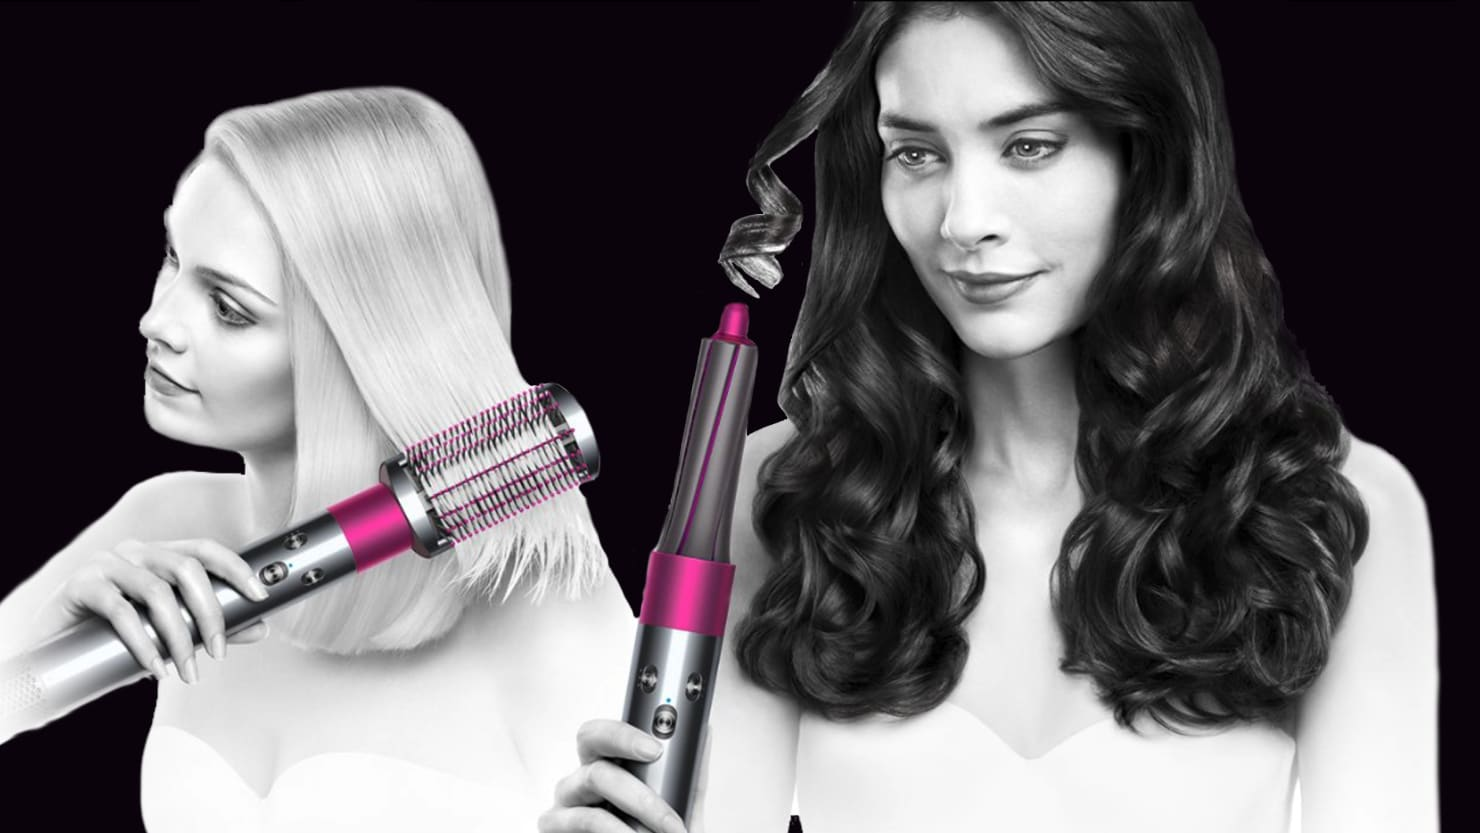 The Dyson Airwrap Styler Is The Swiss Army Knife Of Hair Tools